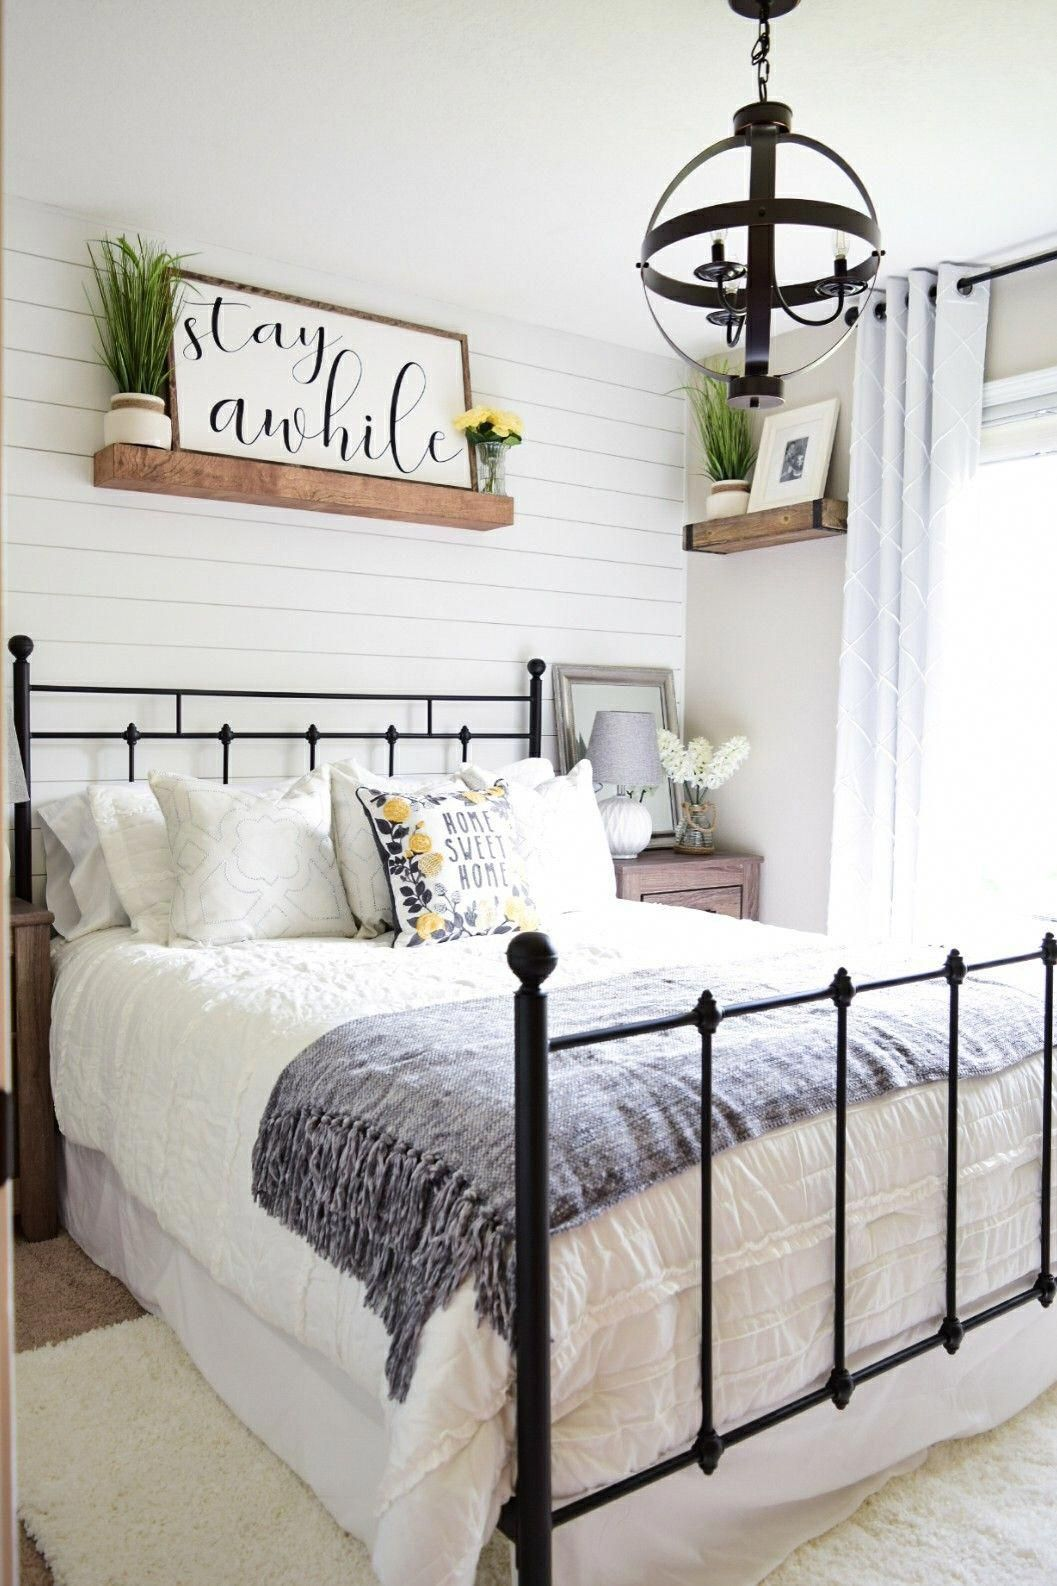 Excellent Living Room Decor Are Available On Our Website Have A Look And You Will Not Be Sorry You Small Guest Bedroom Farmhouse Guest Bedroom Remodel Bedroom